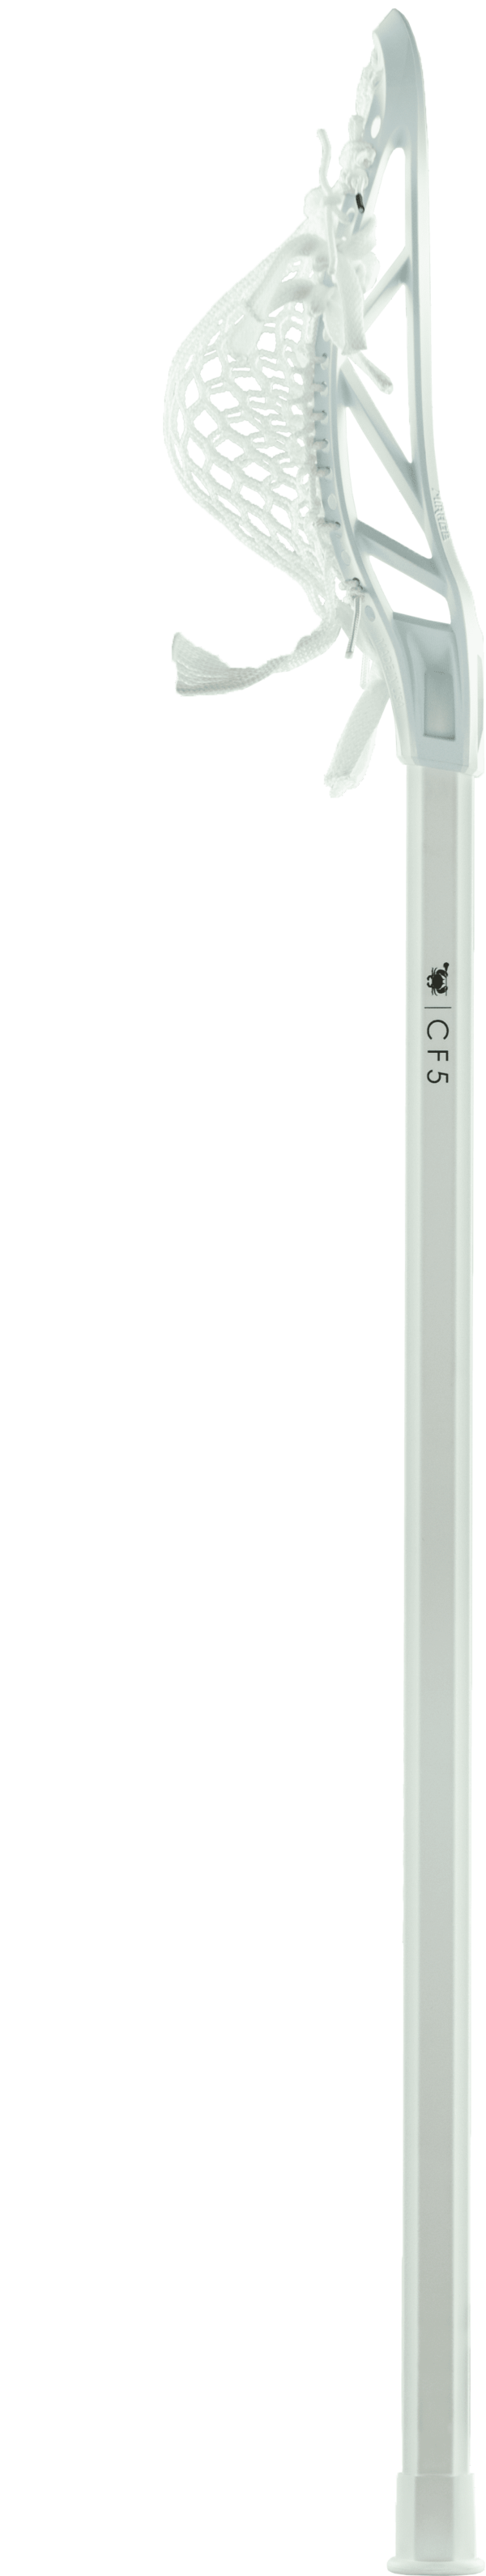 CF5-Complete-White-Side-Cutout-1.png